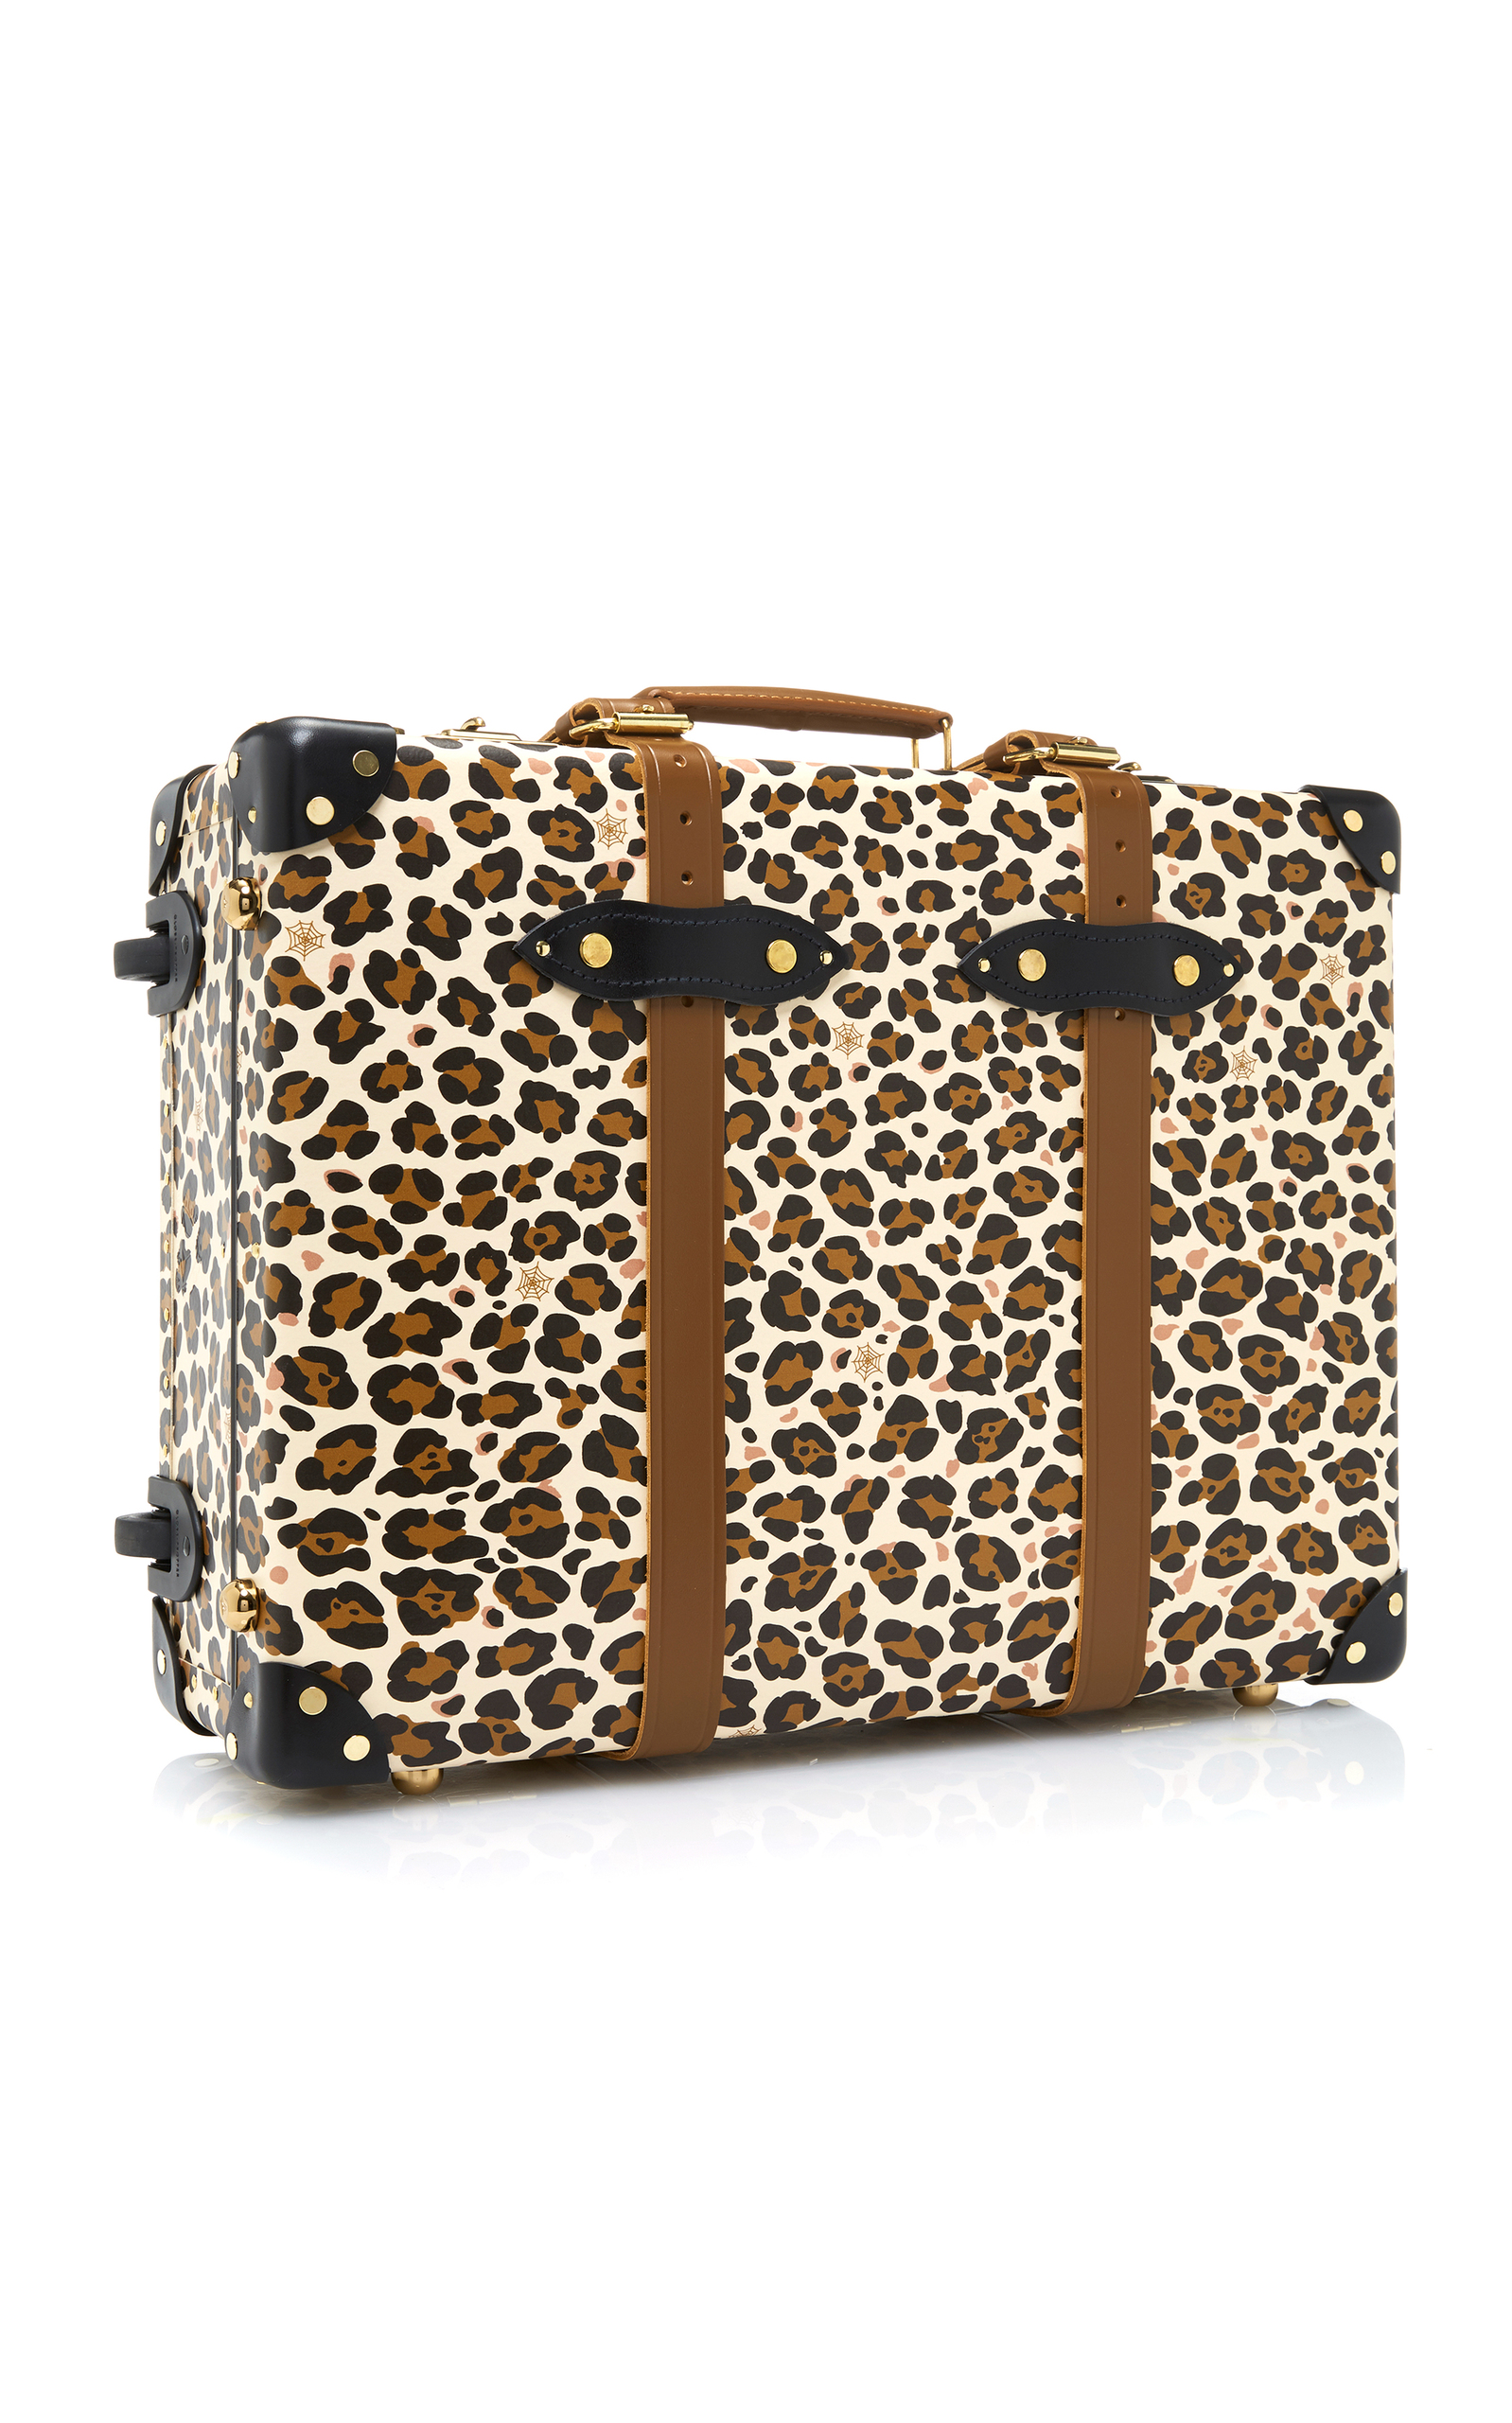 Charlotte Olympia x Globe-Trotter Leopard-Print Leather Trolley Case Charlotte Olympia rGNmweh9G